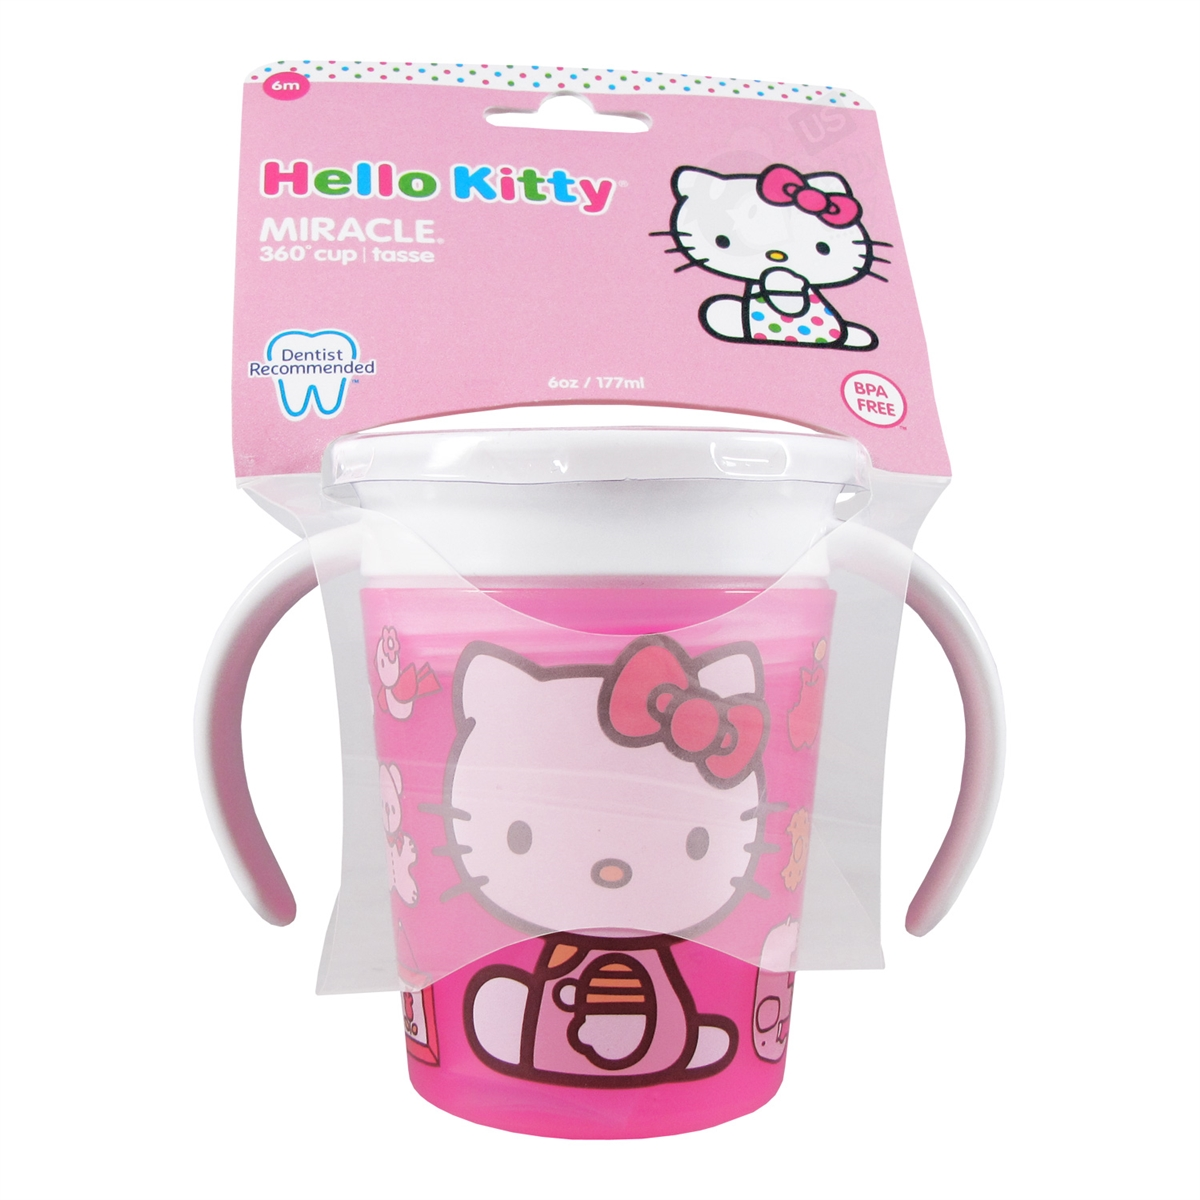 Hello Kitty Miracle 360 Cup 6 Oz Munchkin Easy Squeezy Spoon Baby Utensils